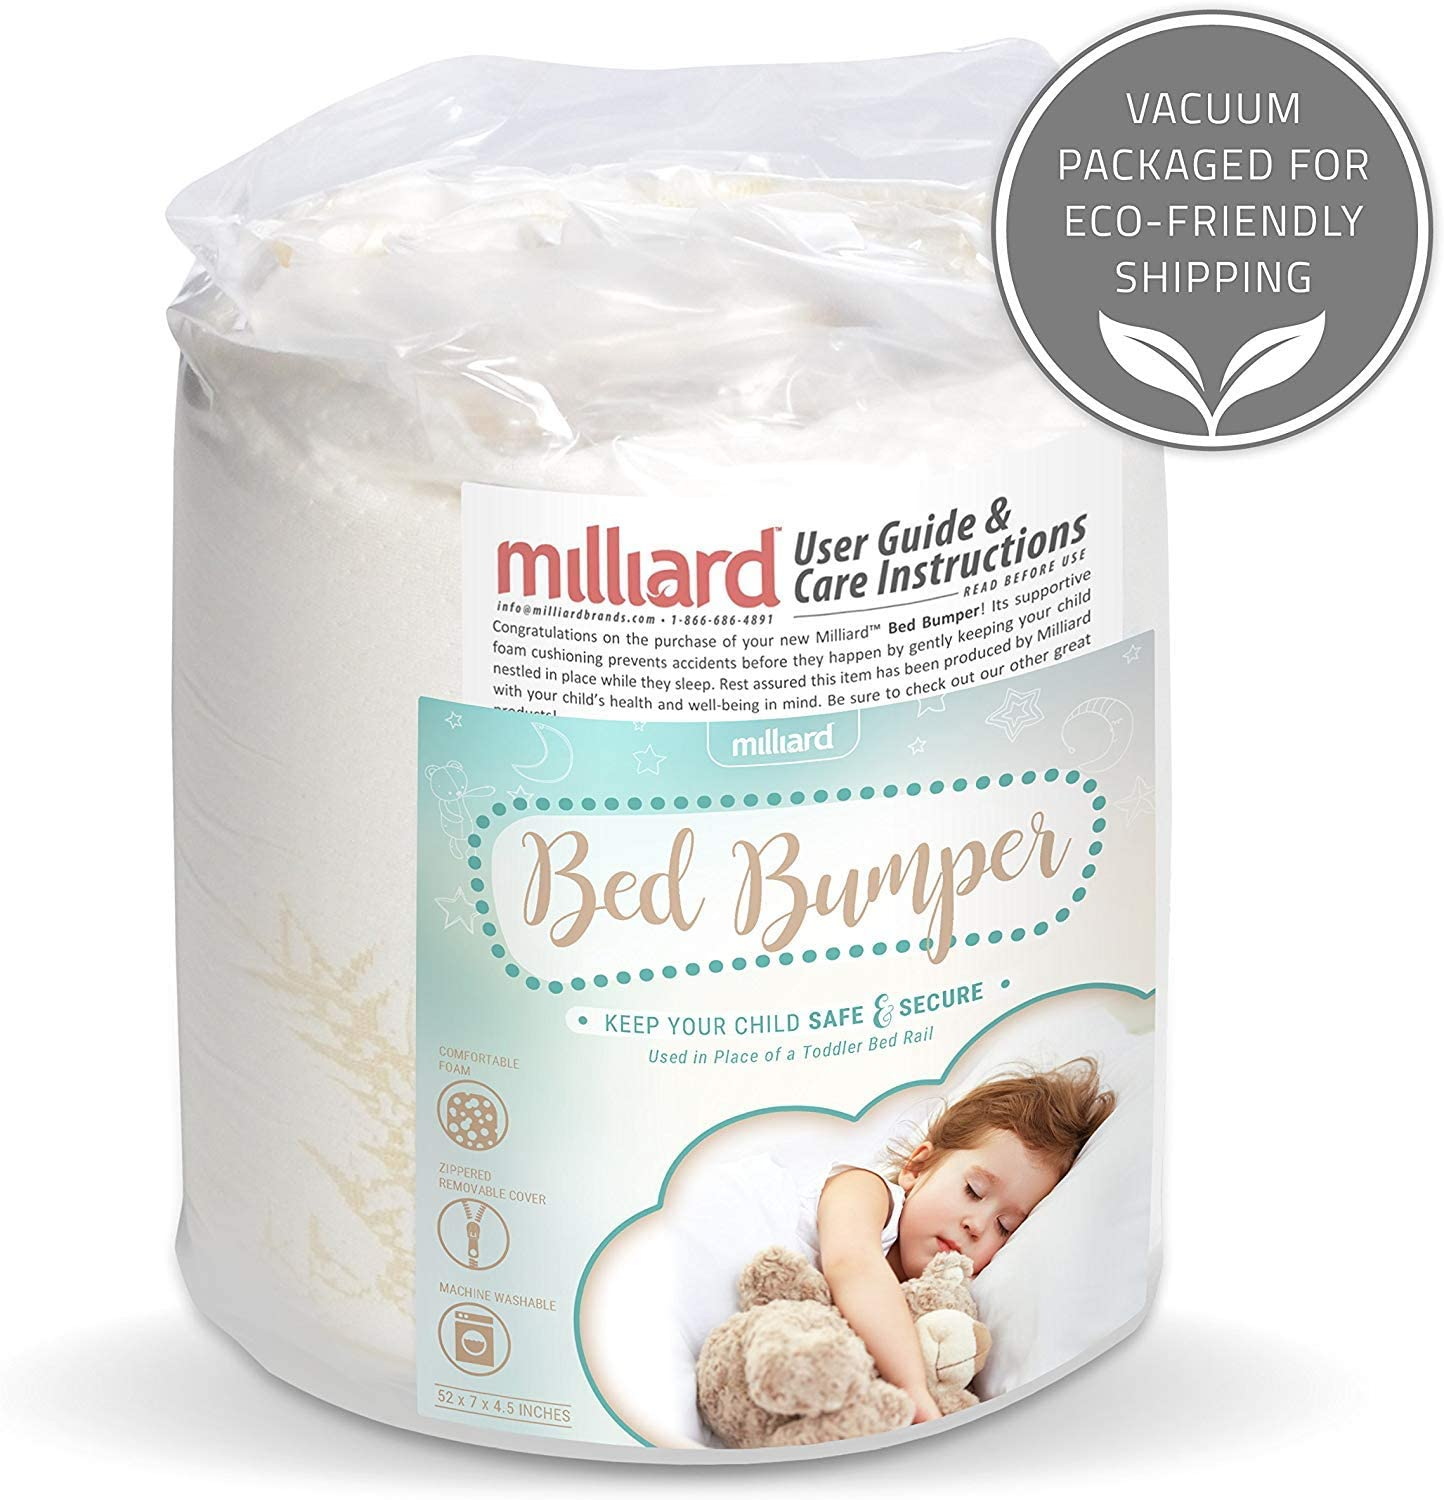 Milliard Bed Bumper (1 Pack) Foam Safety Rail Guard with Non-Slip Hypoallergenic Water Resistant and Washable Cover, Bed Rail for Toddlers, Kids, Adults and Seniors